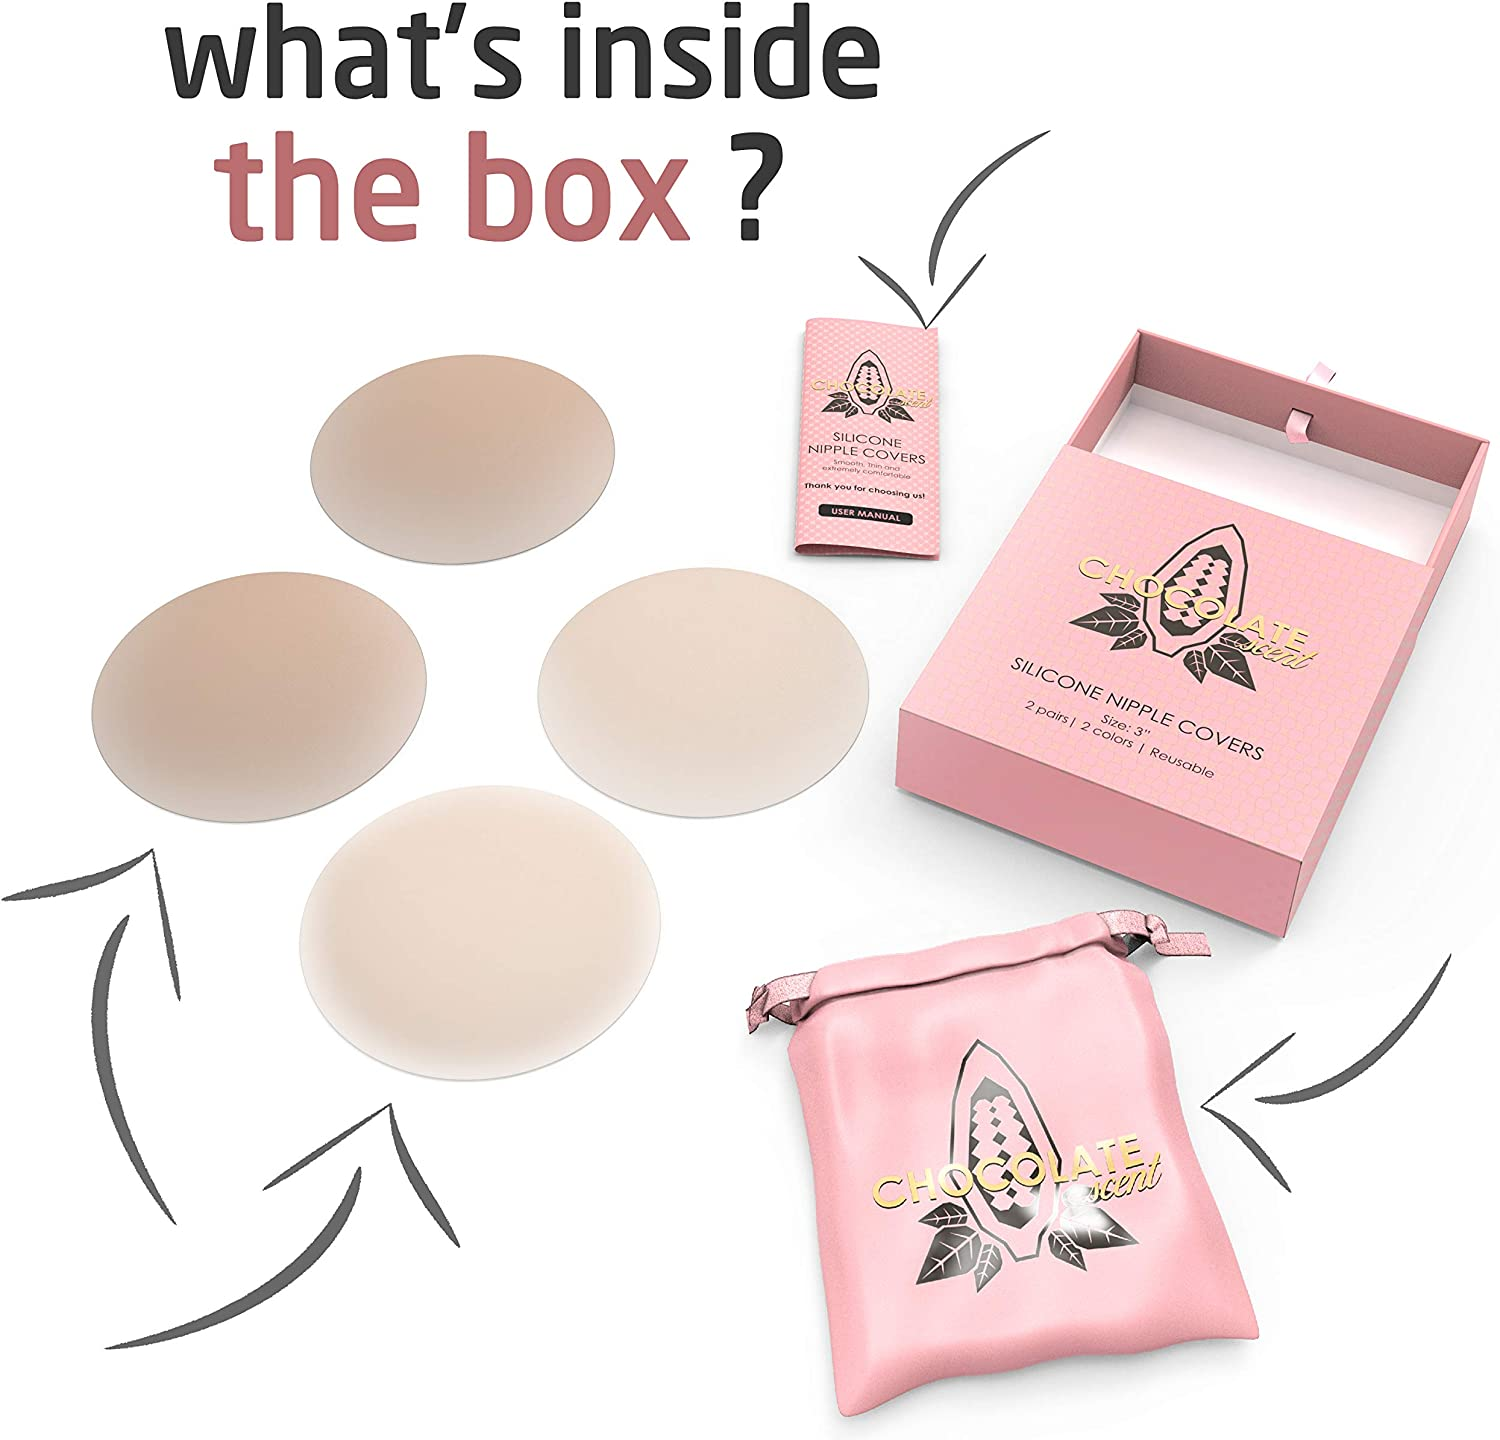   2 pairs Nipple Covers for Women Reusable Adhesive Invisible Silicone Nipple Covers 3 inch Matte Breast Pasties for Women Gift Box